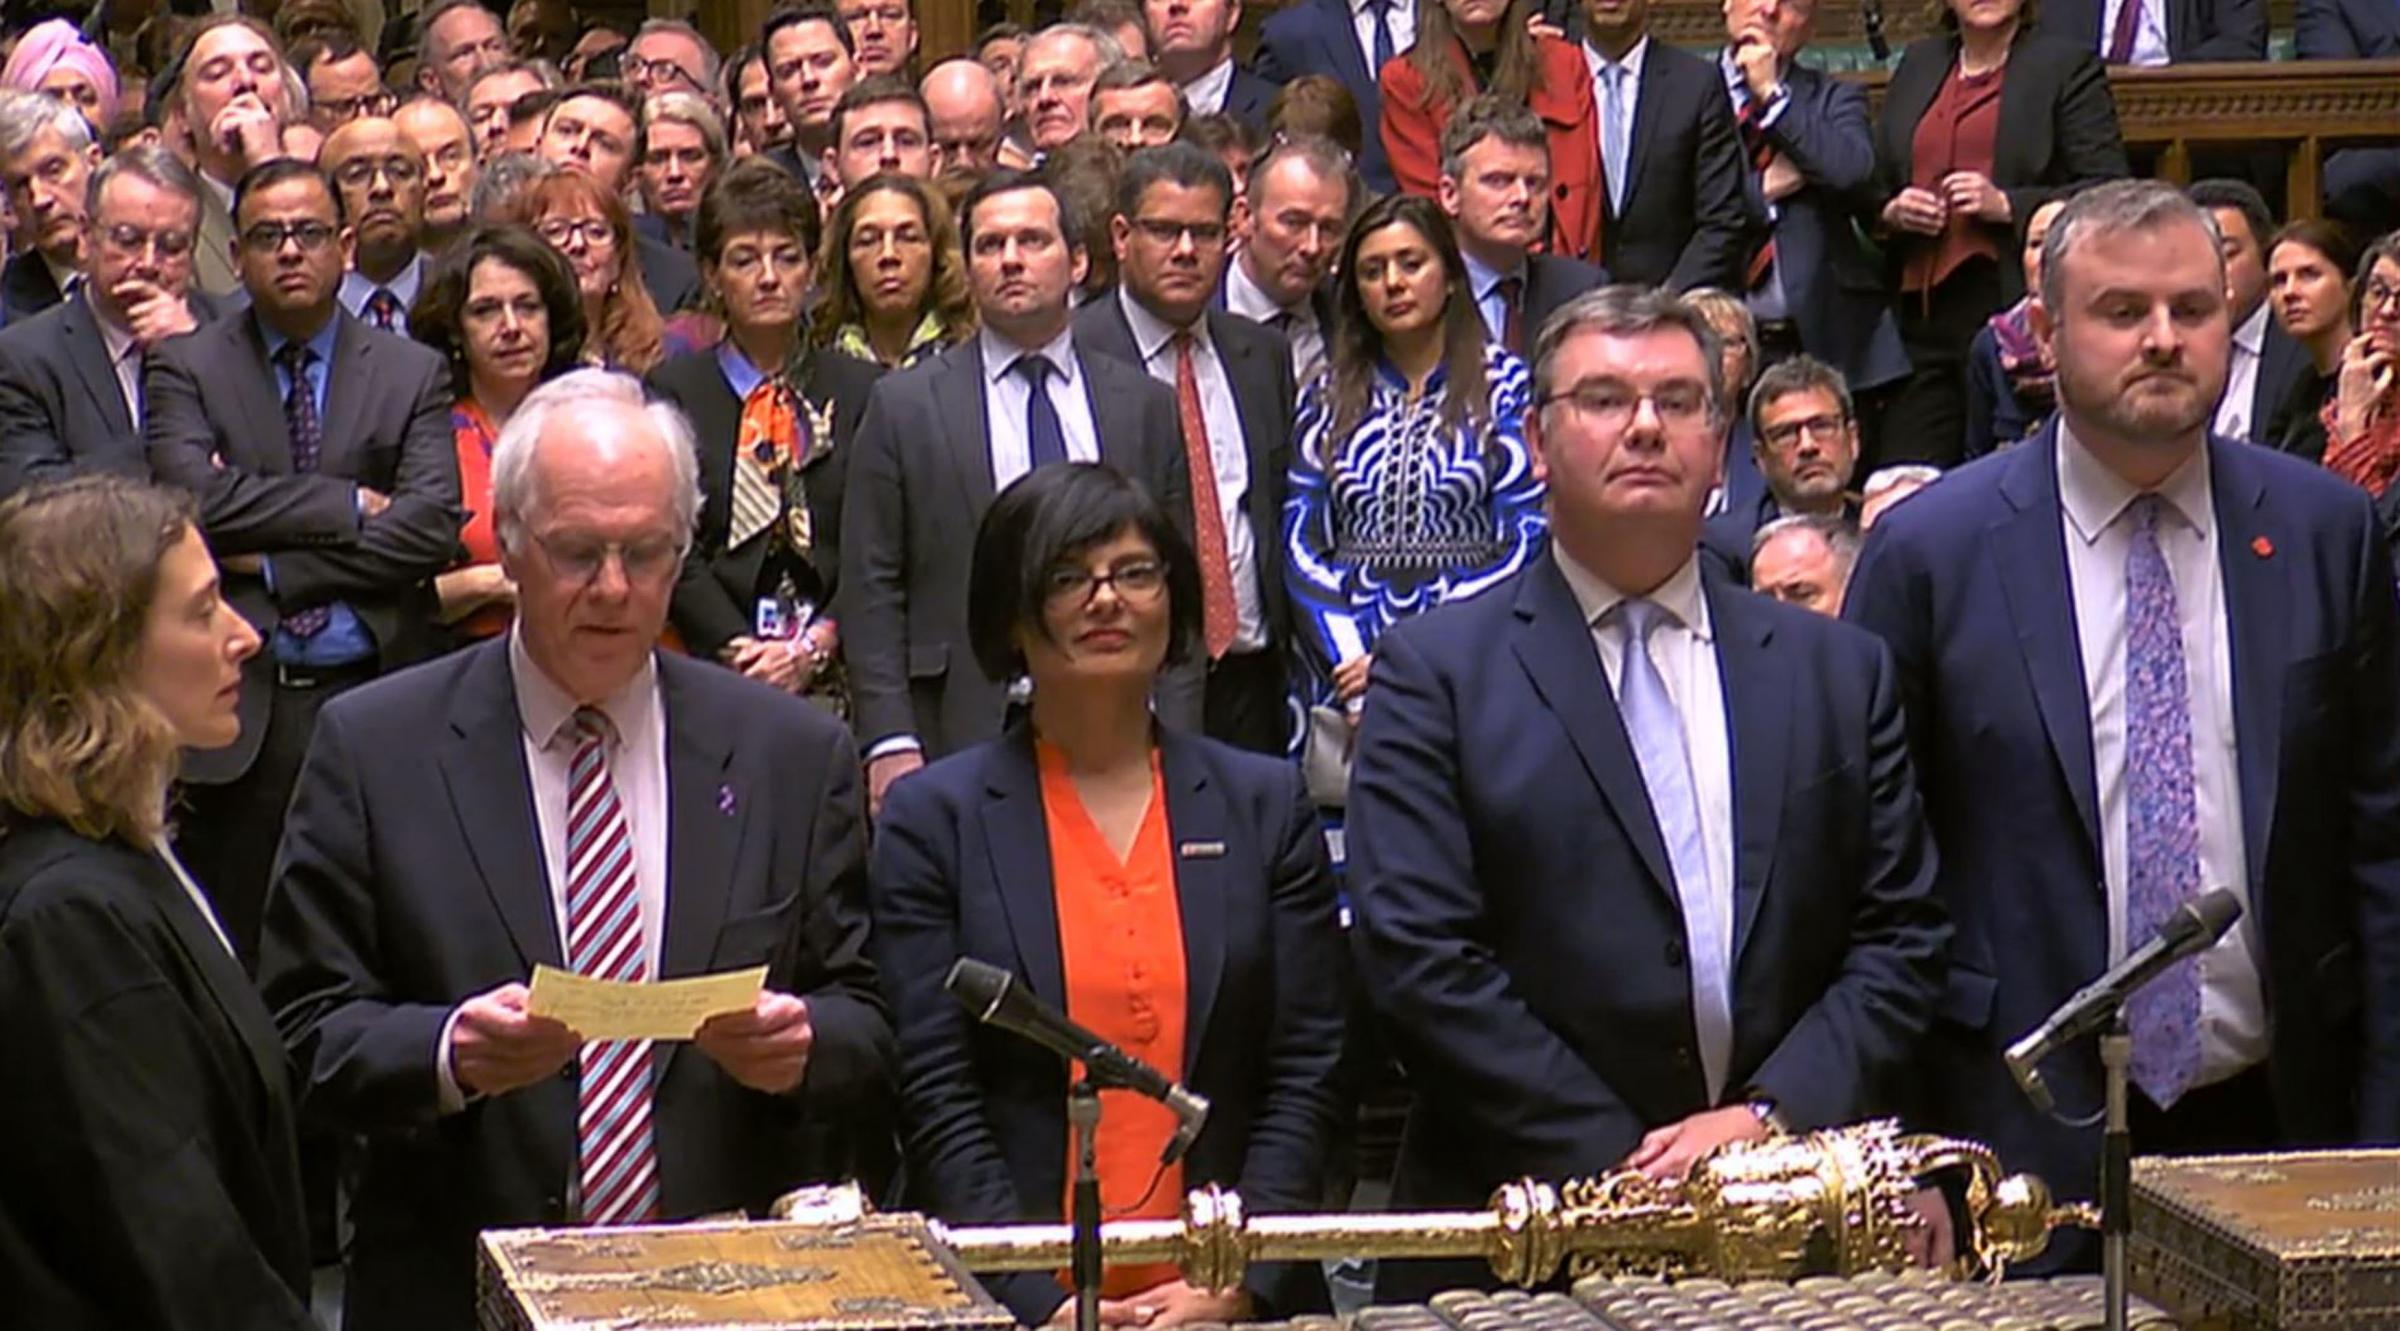 MPs announcing the Brexit result in the House of Commons, London, where they rejected the GovernmentÕs Brexit deal by 391 votes to 242. PRESS ASSOCIATION Photo. Picture date: Tuesday March 12, 2019. See PA story POLITICS Brexit. Photo credit should